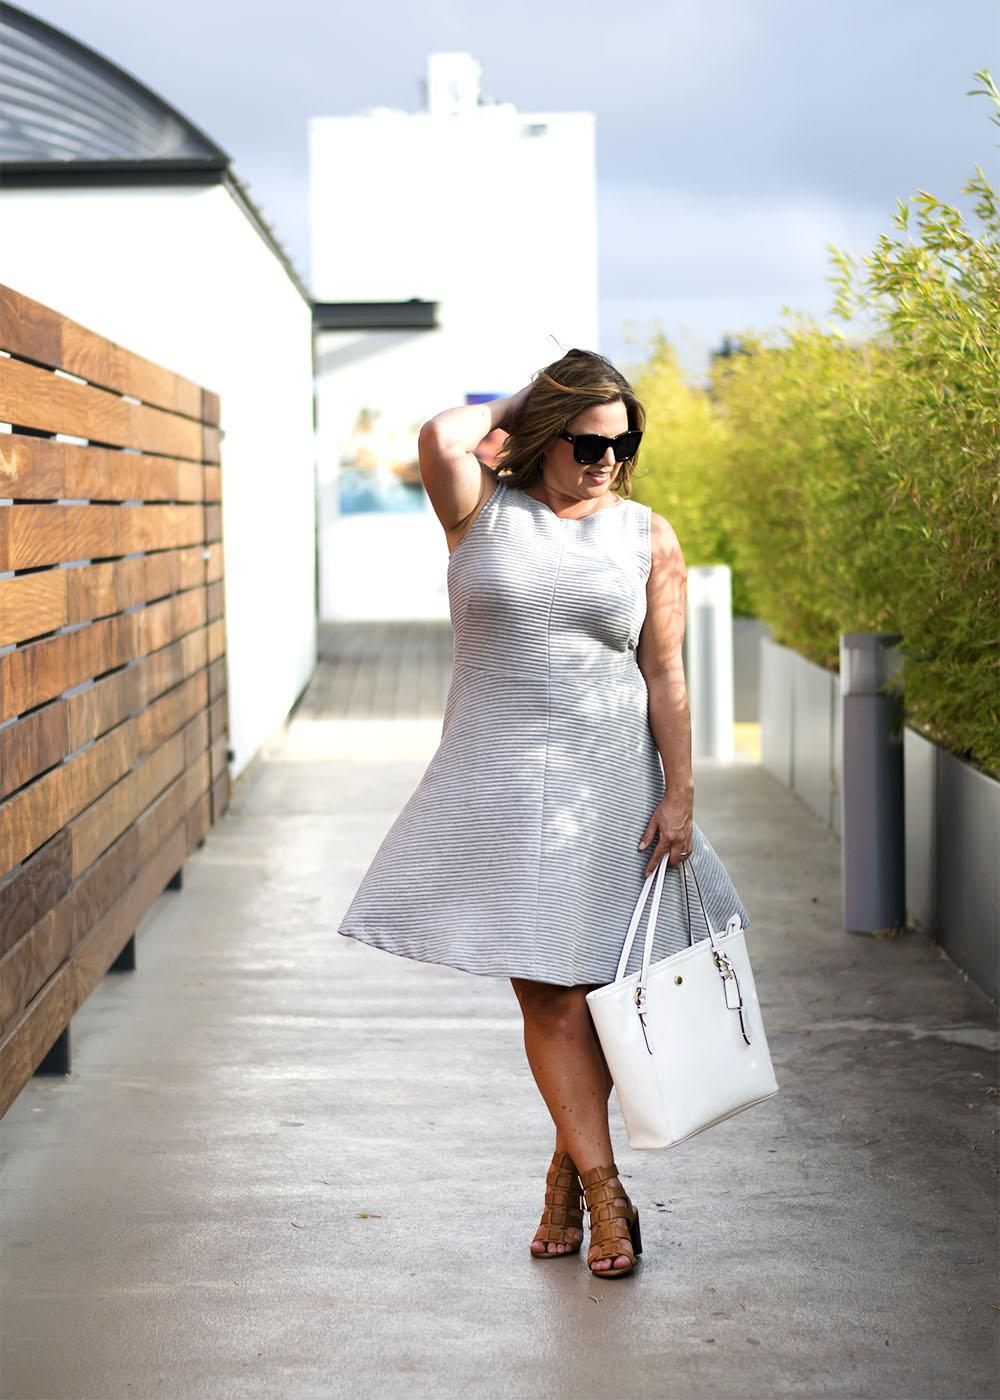 Work Outfit Los Angeles Fashion Street Style Blogger Personal Stylist Celine Inspired Sunglasses